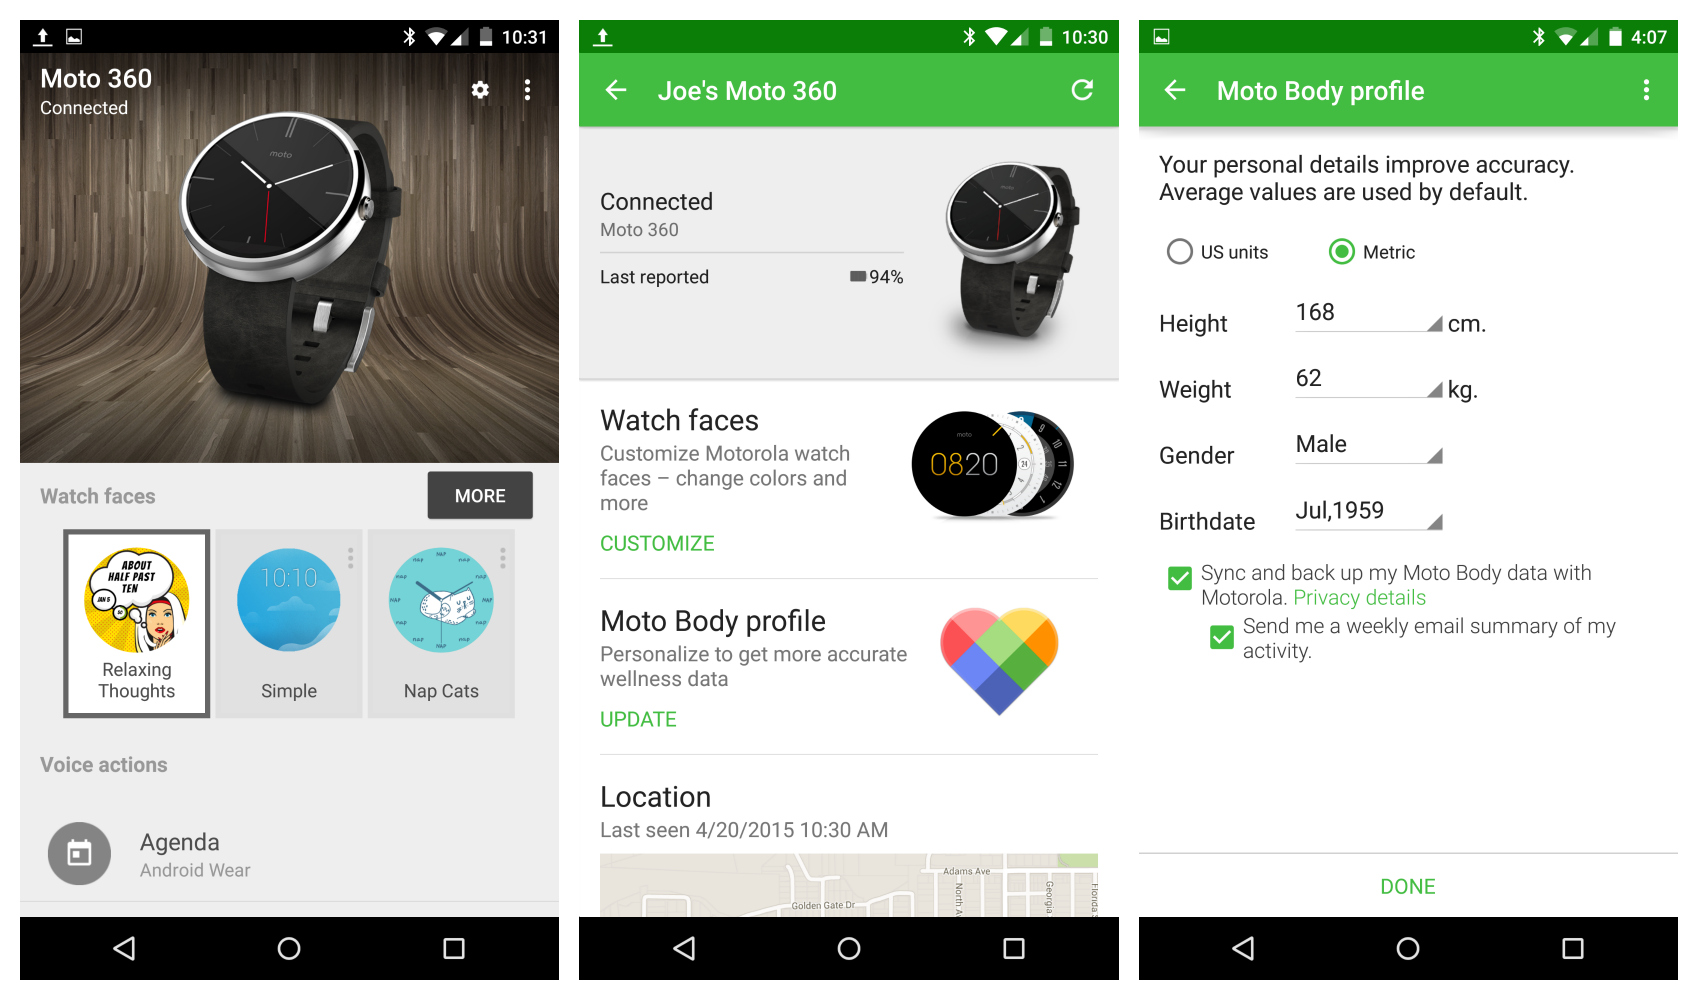 Android Wear and Motorola Connect